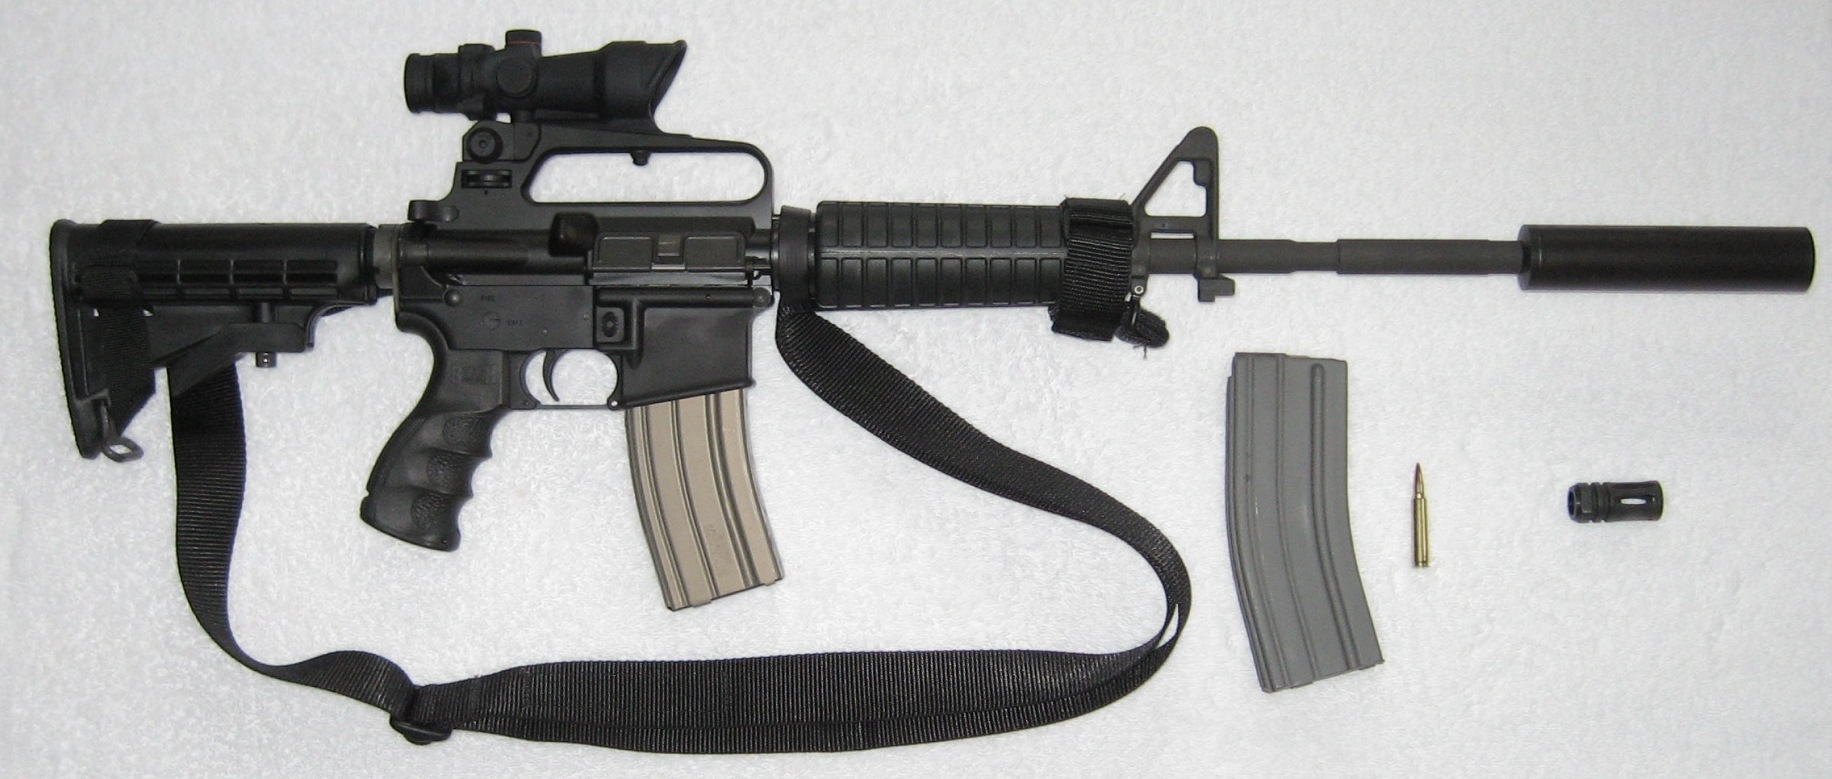 Carbines and The New Prepper, Part One, Contributed by Cameron Green of GAPPNJ.COM